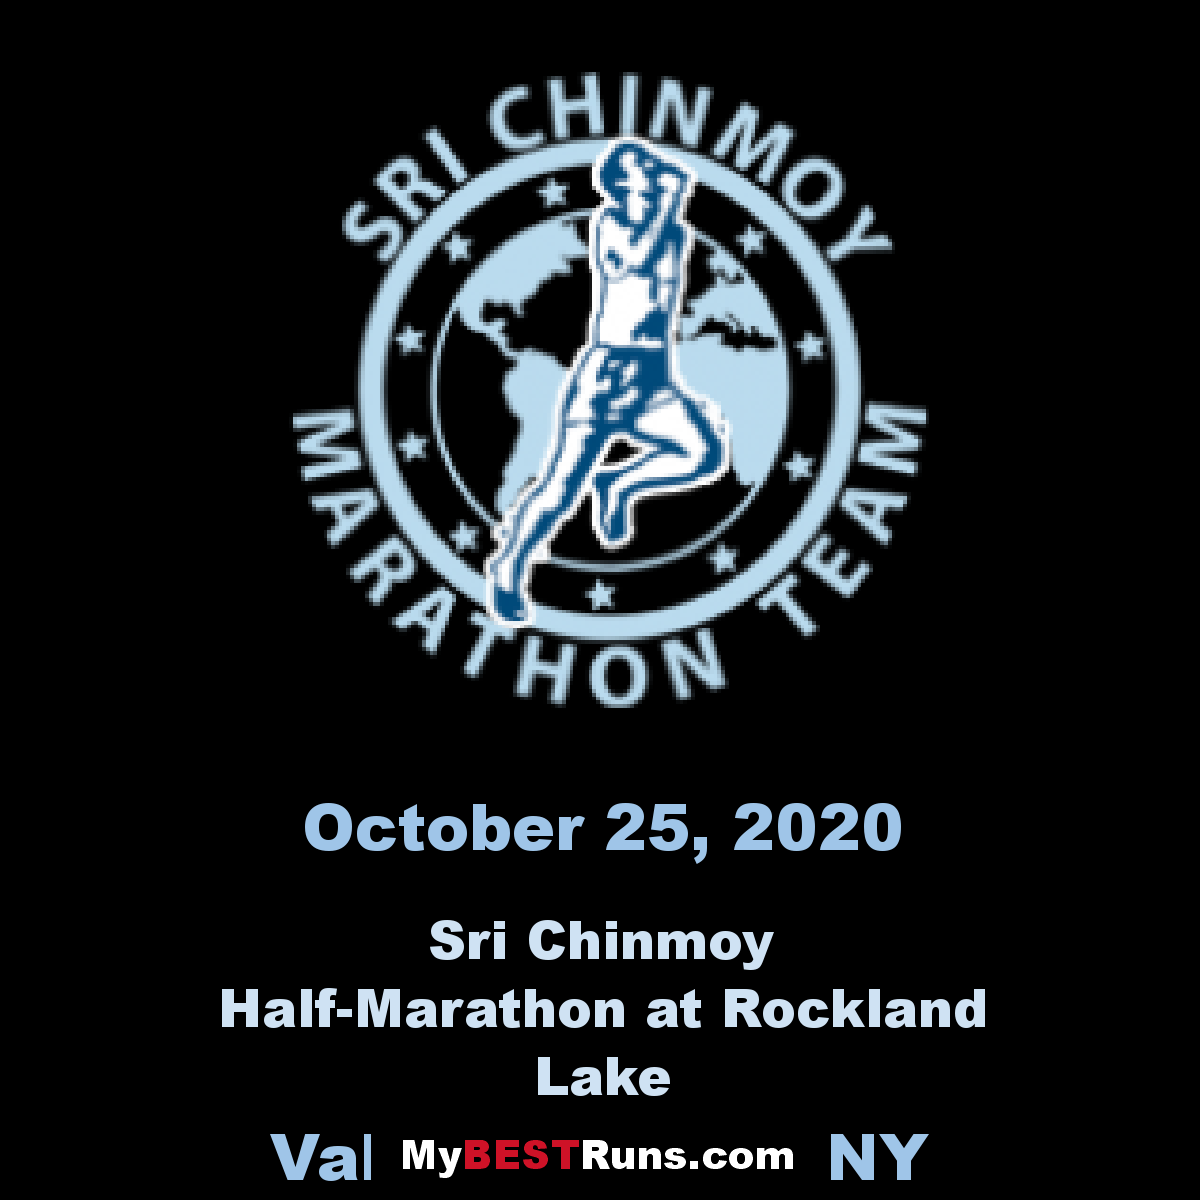 Sri Chinmoy Half-Marathon at Rockland Lake